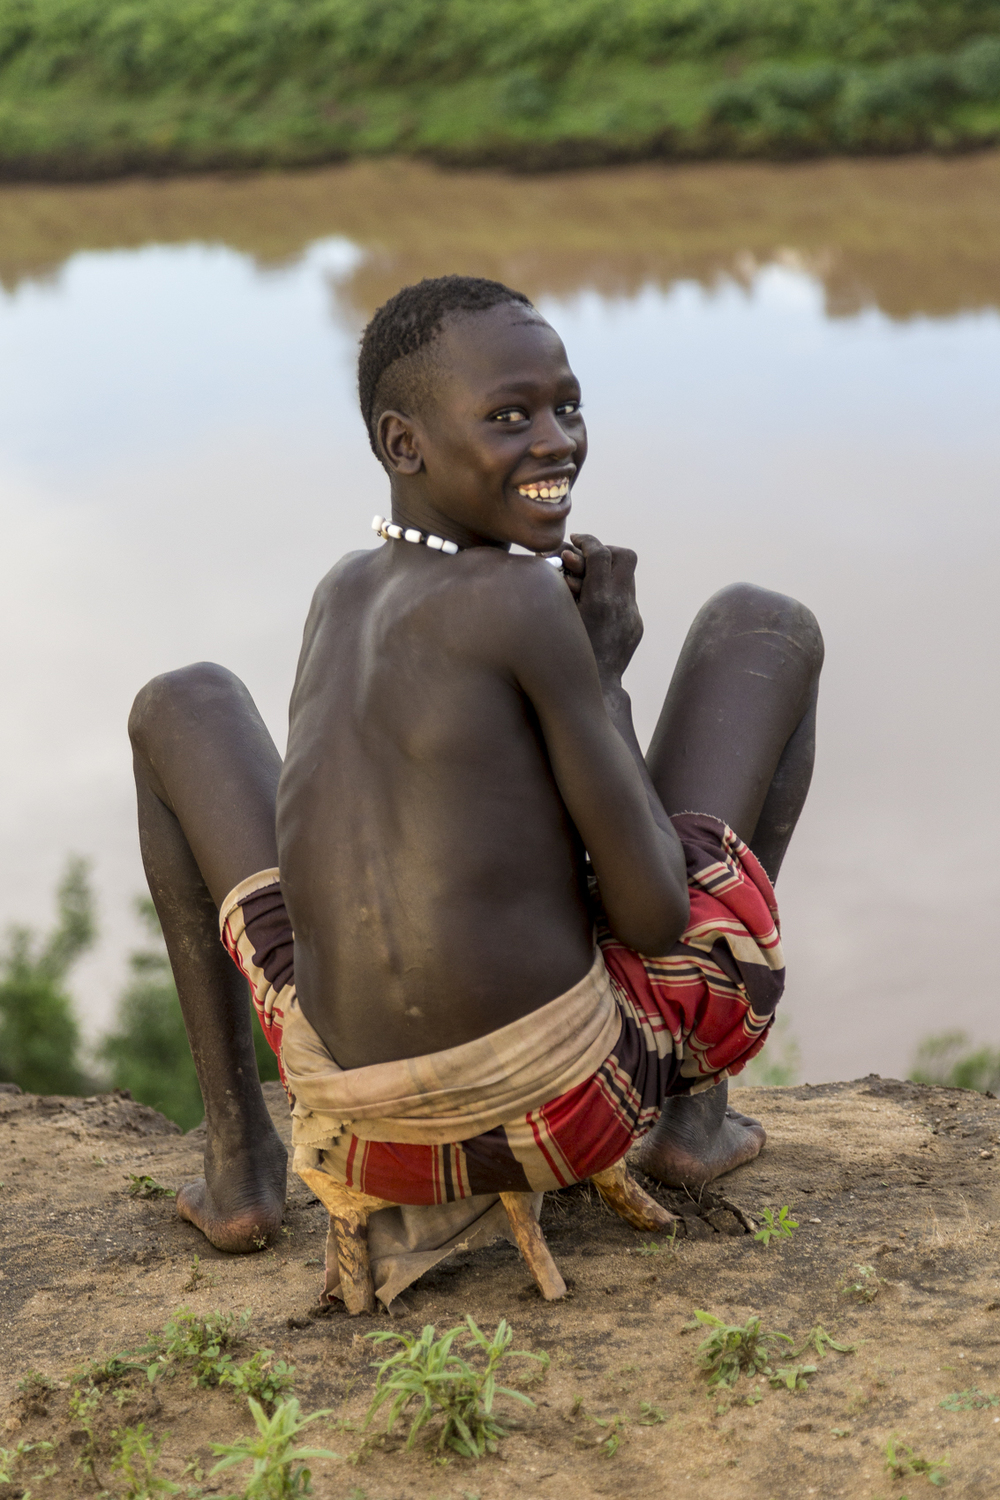 Kara man at the Omo River